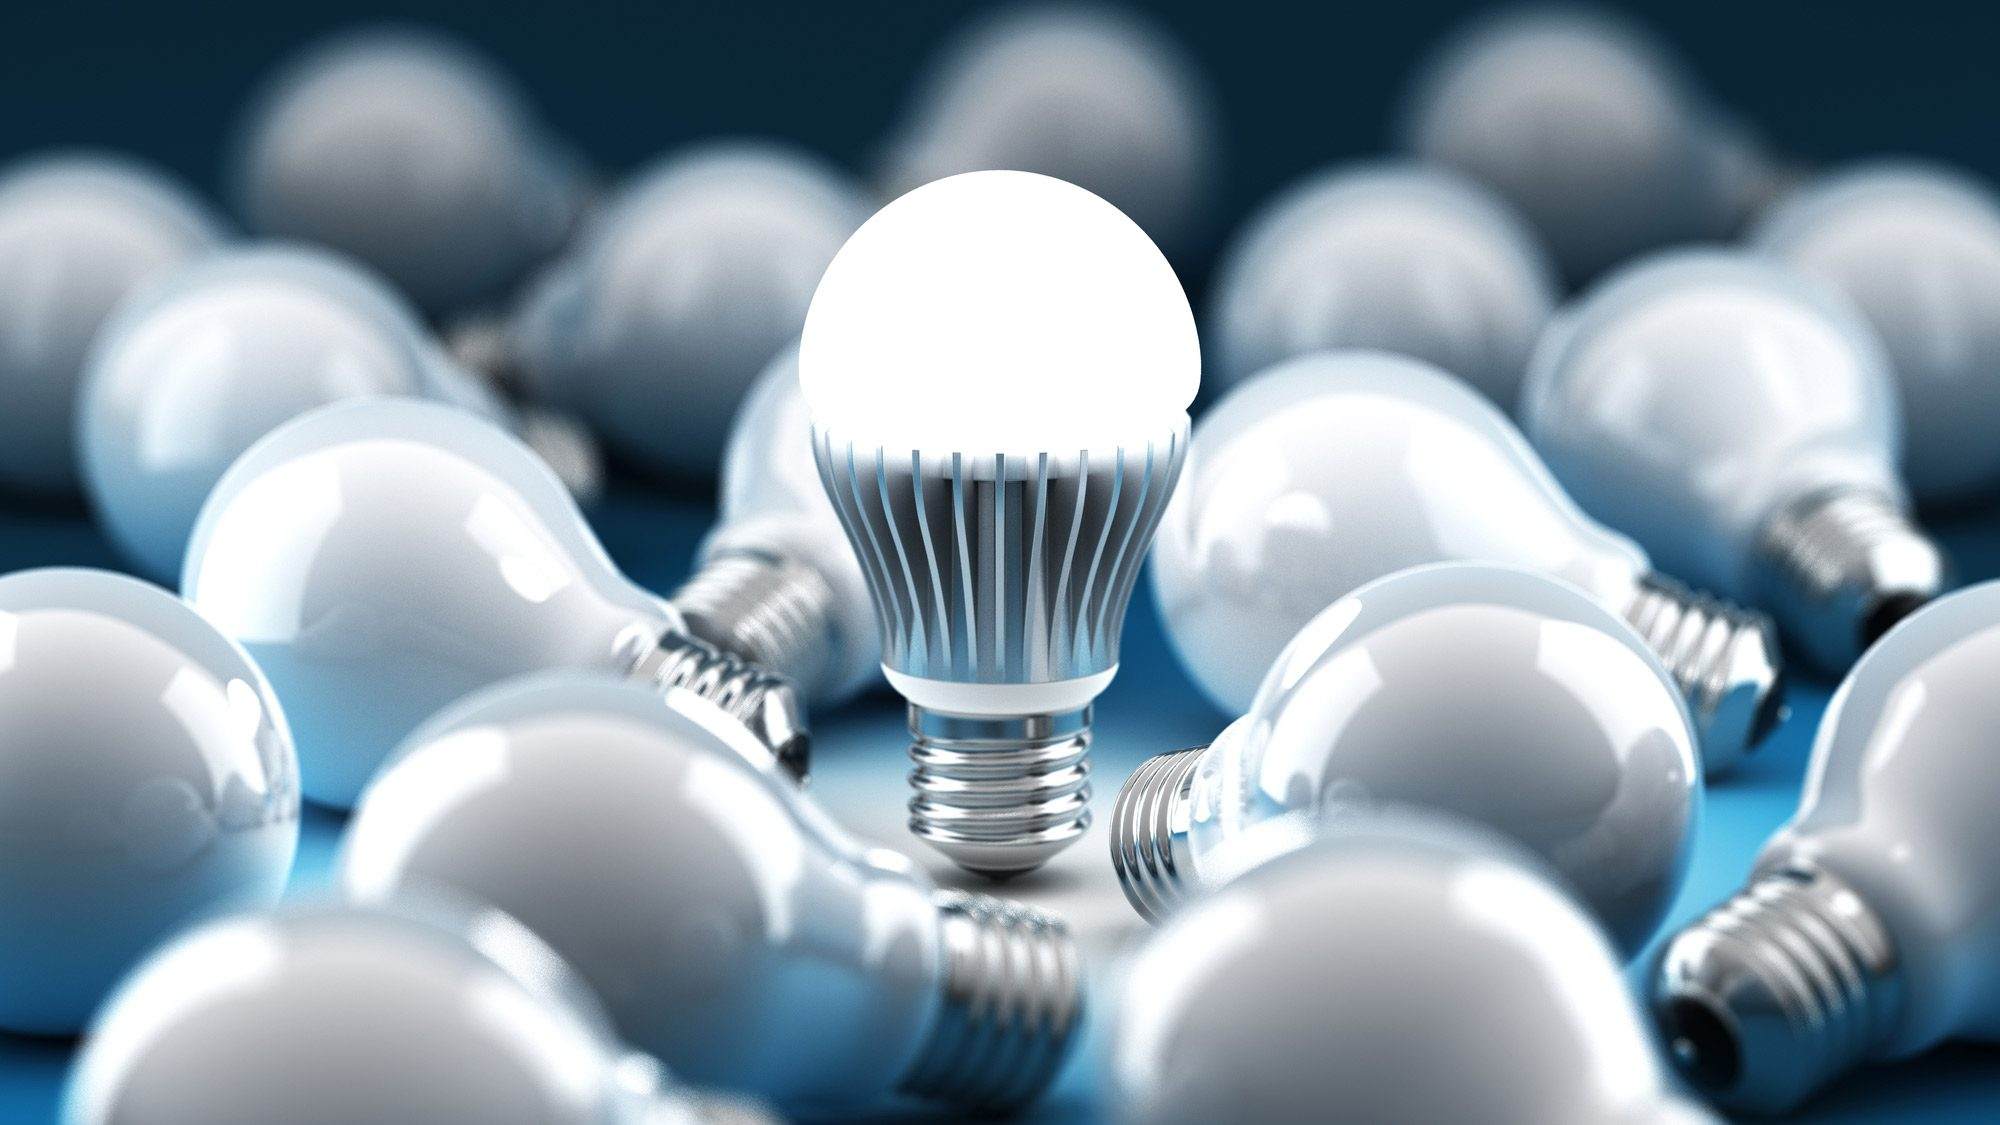 Lightbulb Lights Best Lightbulb For Every Room In Your Home Realtor